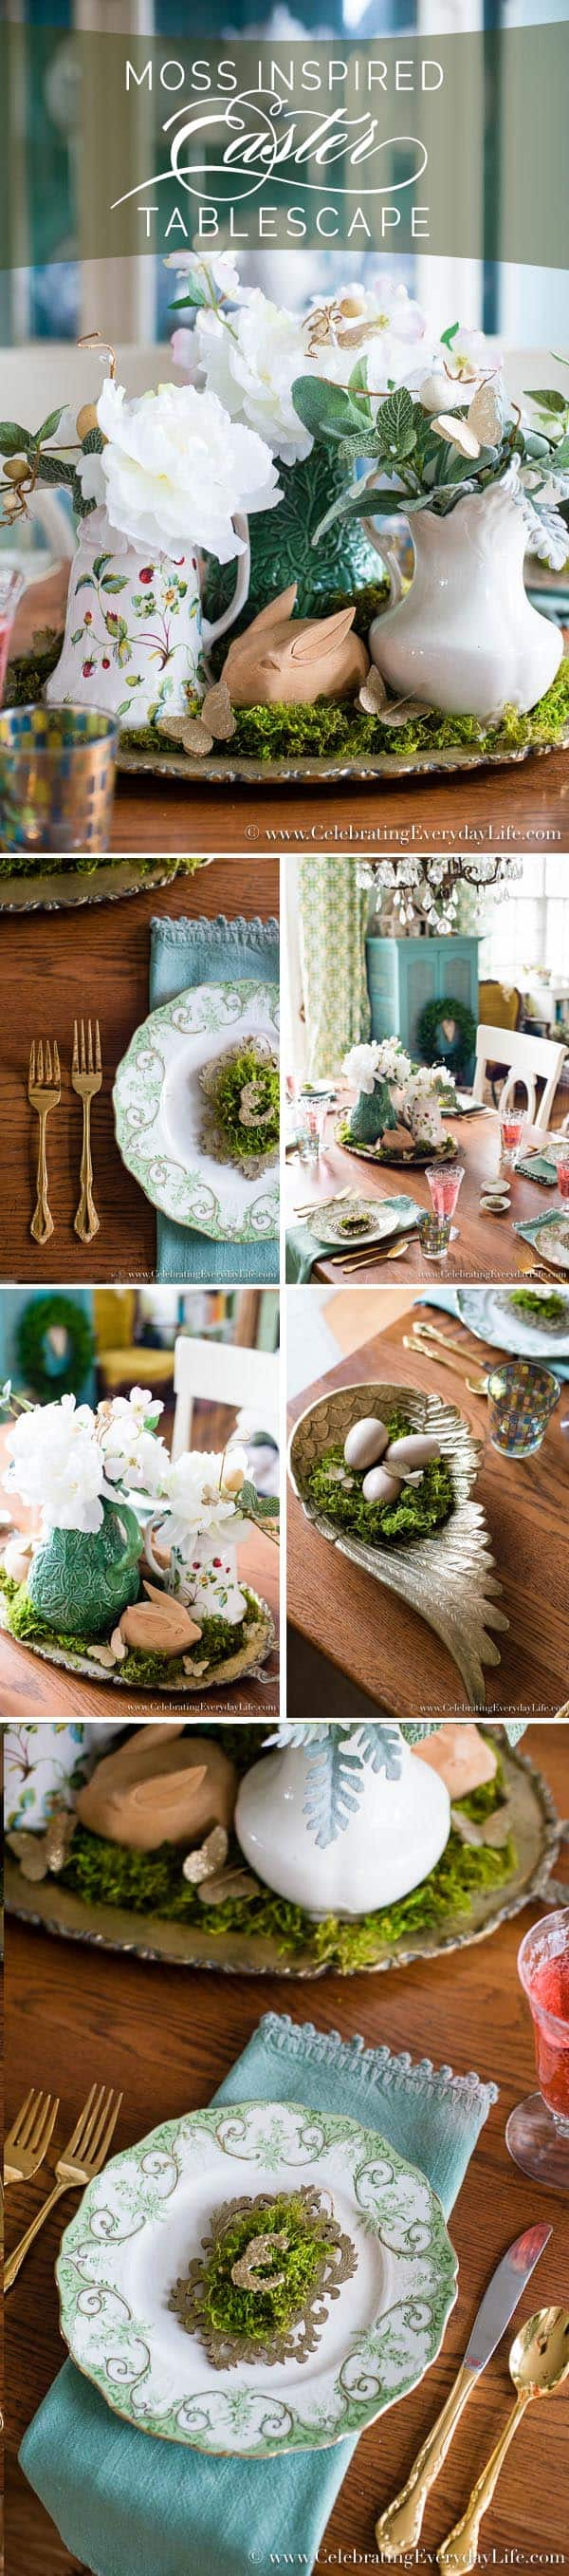 Moss Inspired Easter Tablescape, Elegant green tablescape, Elegant green Easter table, Easter table ideas, Easter decor ideas, green and gold table decor, Celebrating Everyday Life with Jennifer Carroll